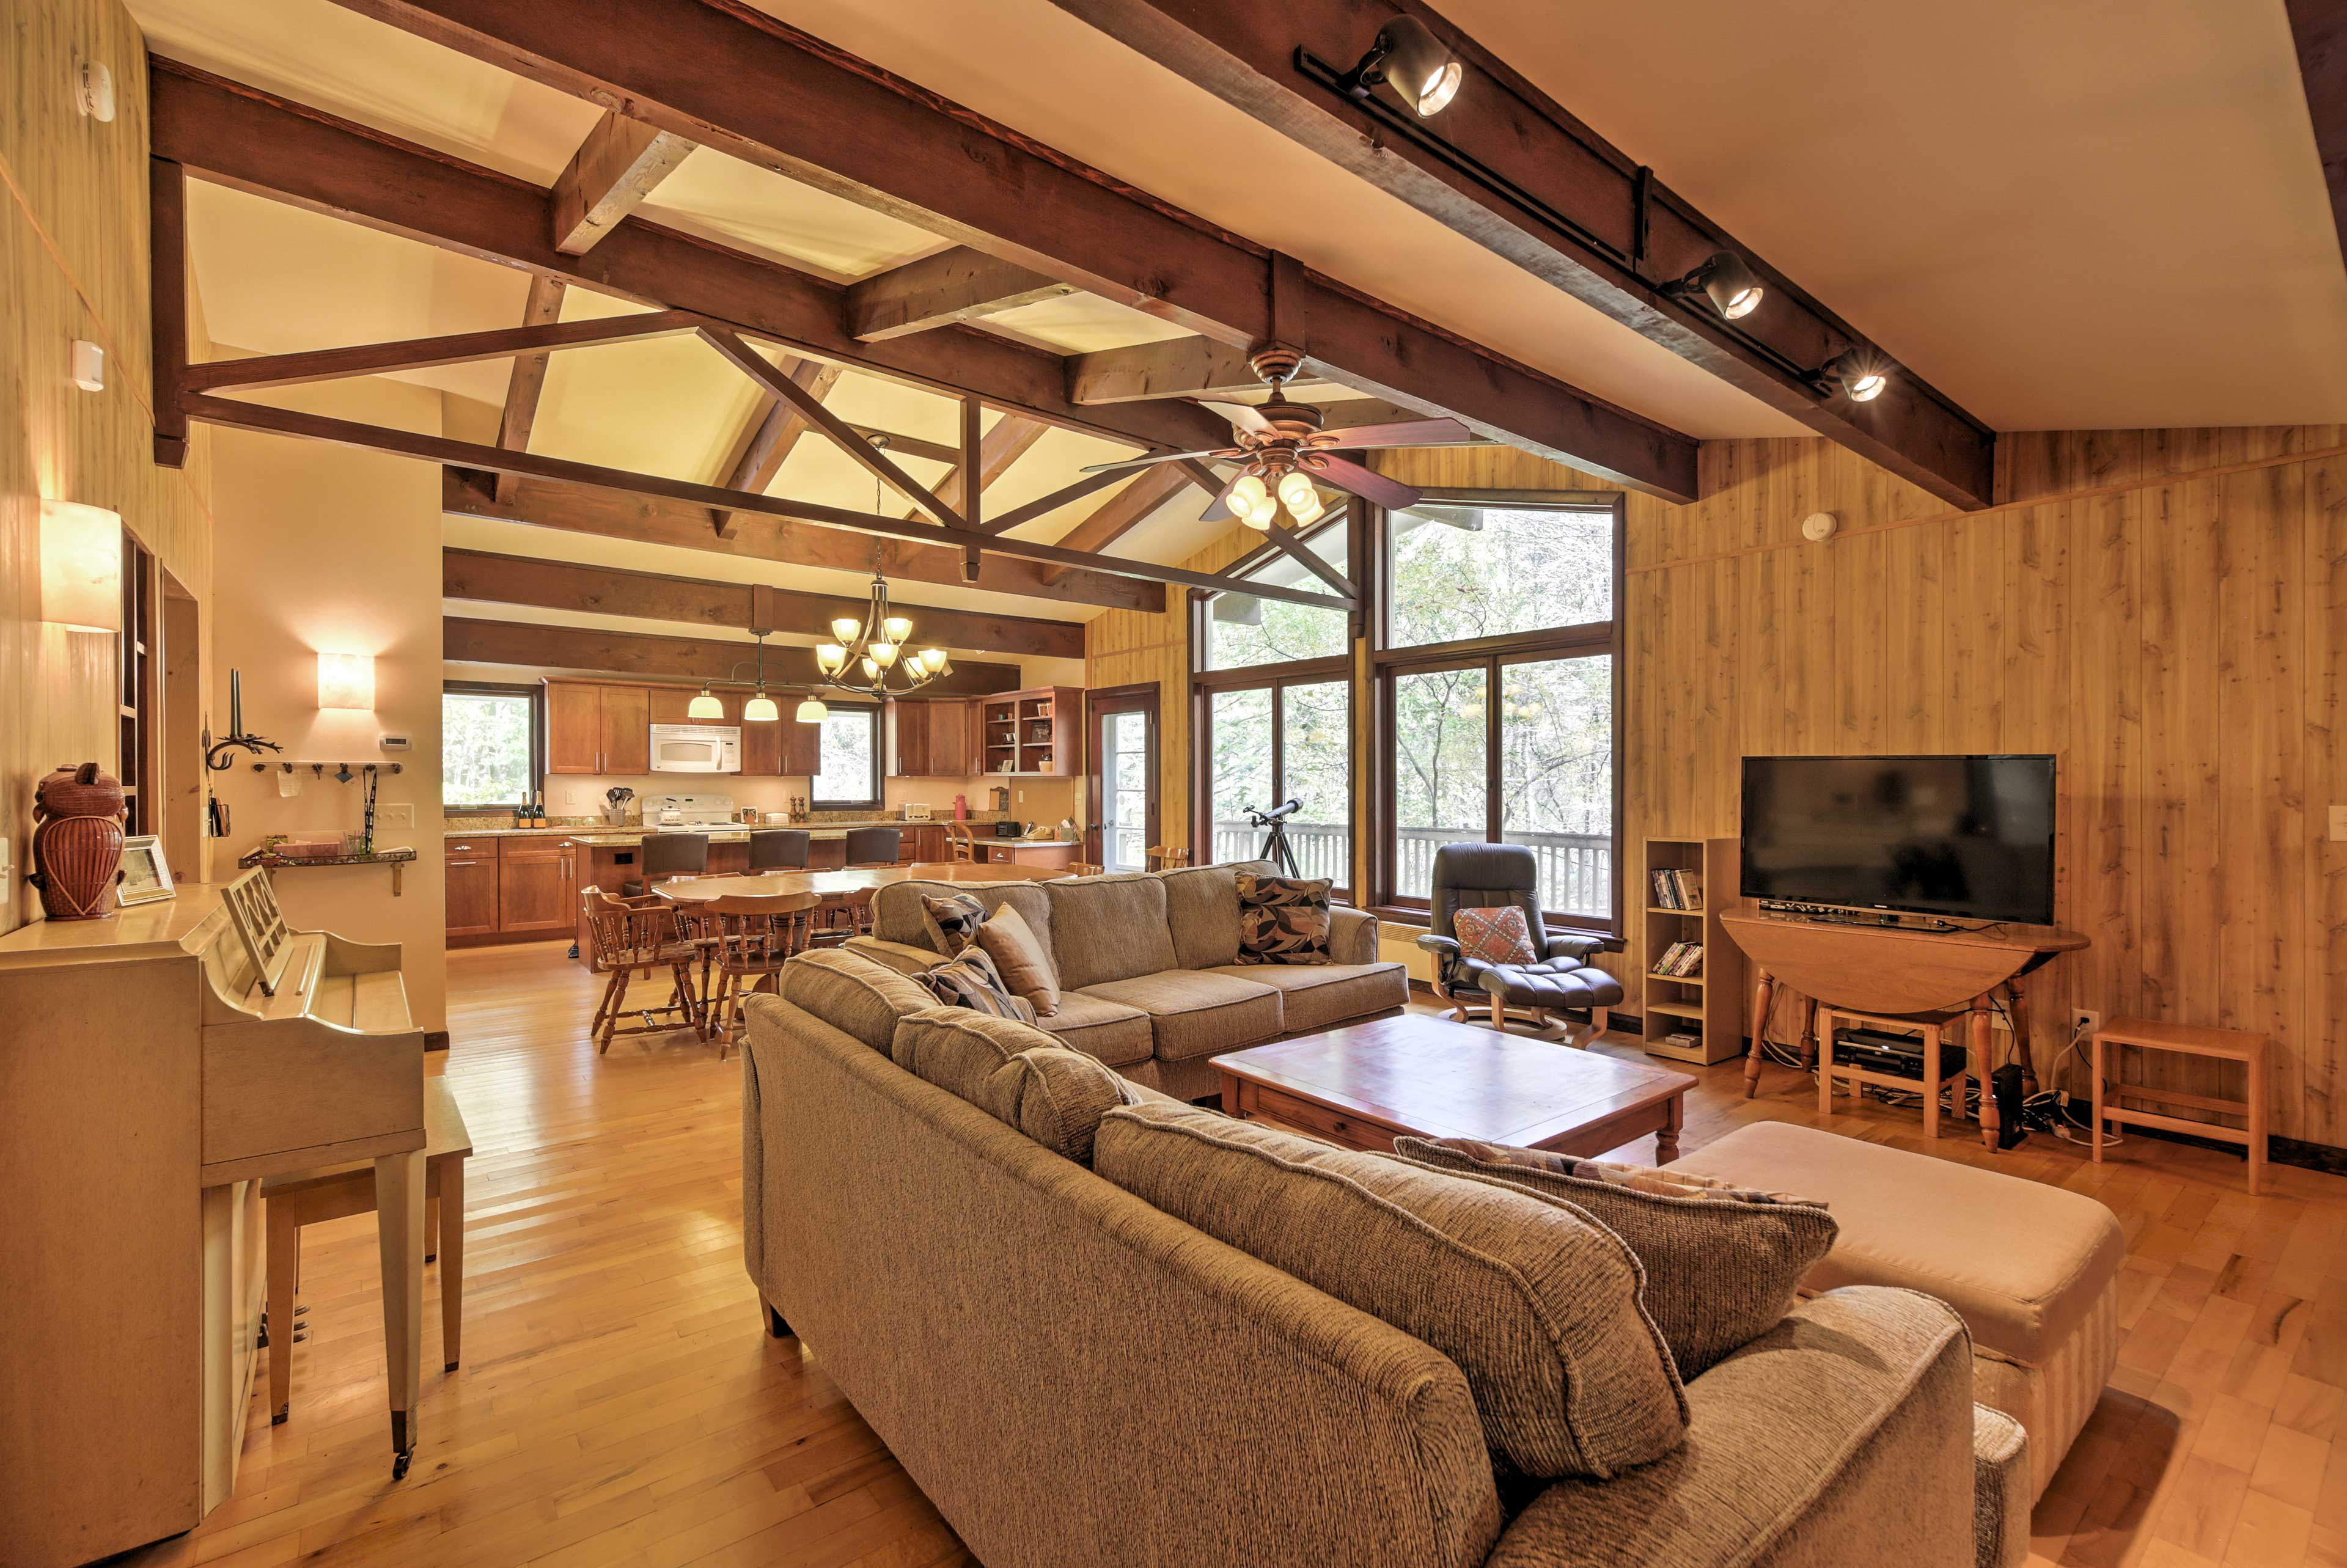 Ideal for a ski retreat, this house is close to Skyship and Snowshed Lodge!